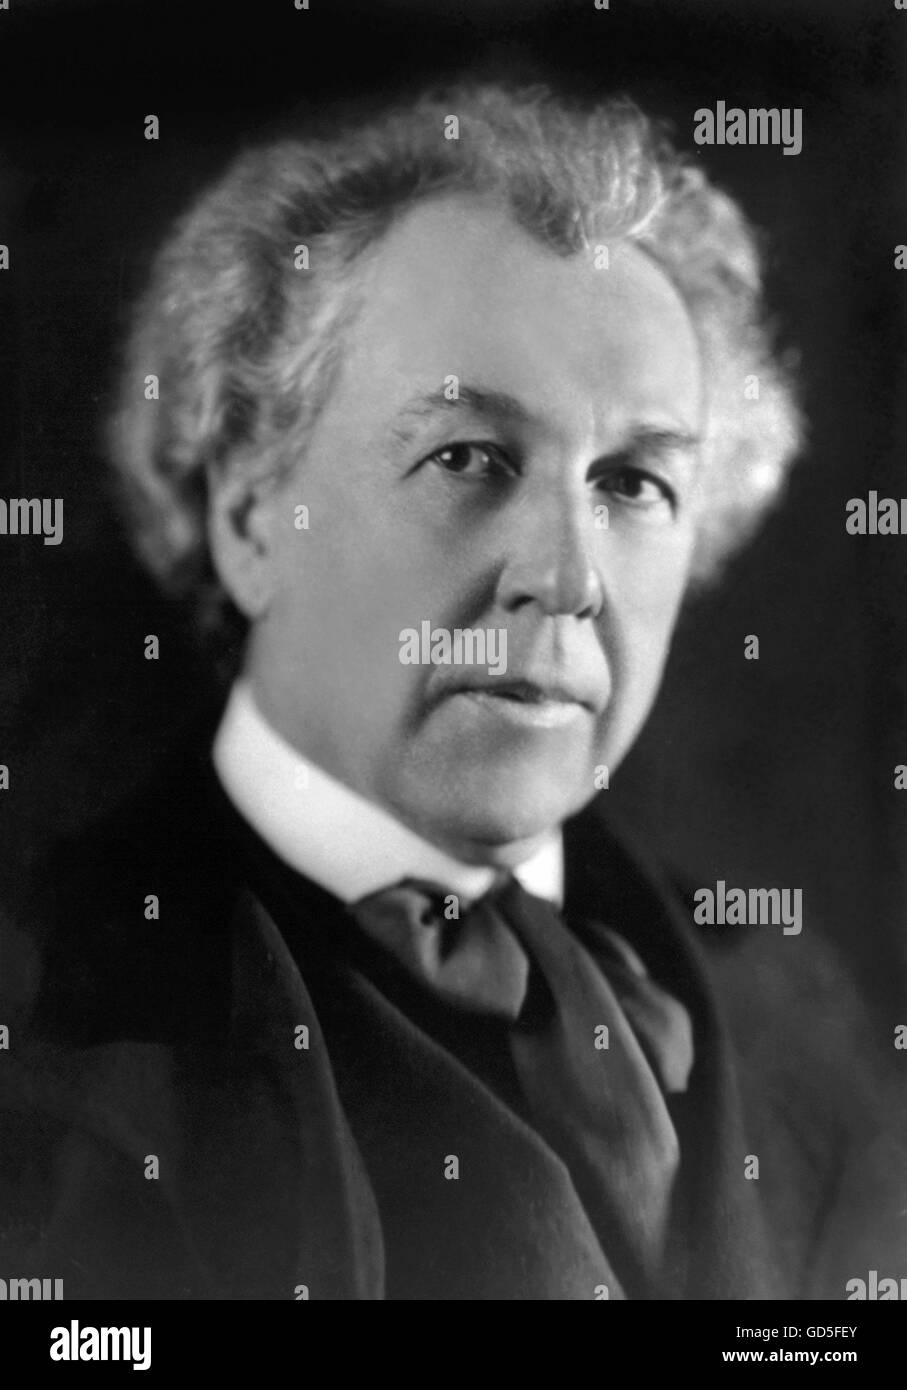 Frank Lloyd Wright. Portrait of the renowned American architect  c.1926. - Stock Image